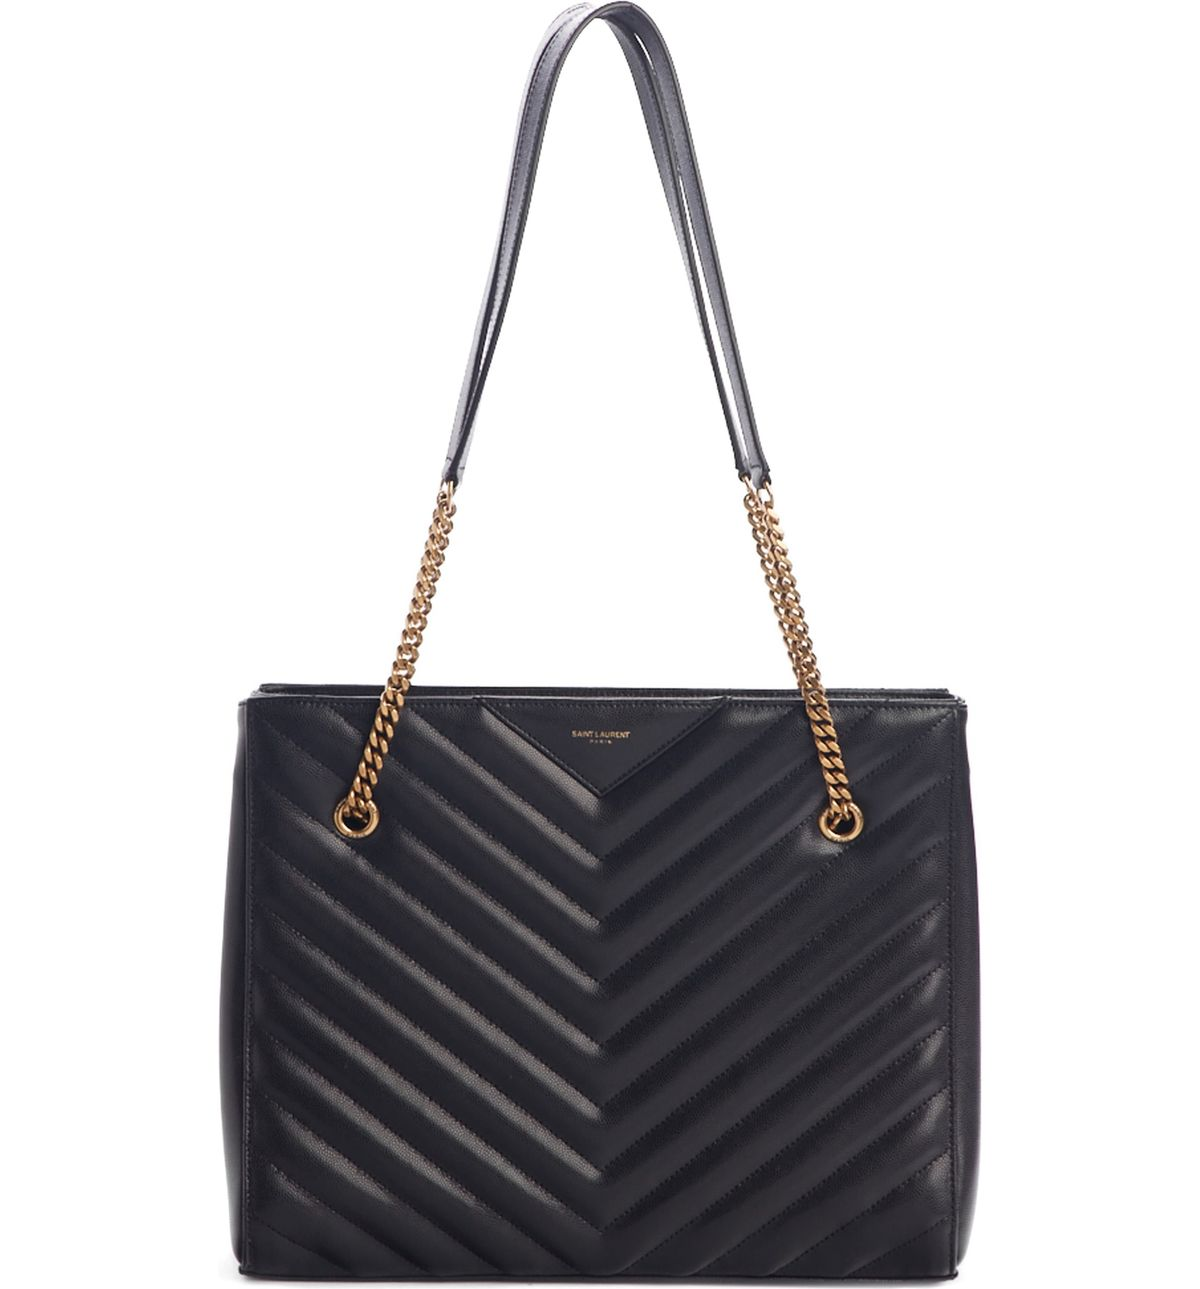 Medium Tribeca Quilted Calfskin Leather Tote